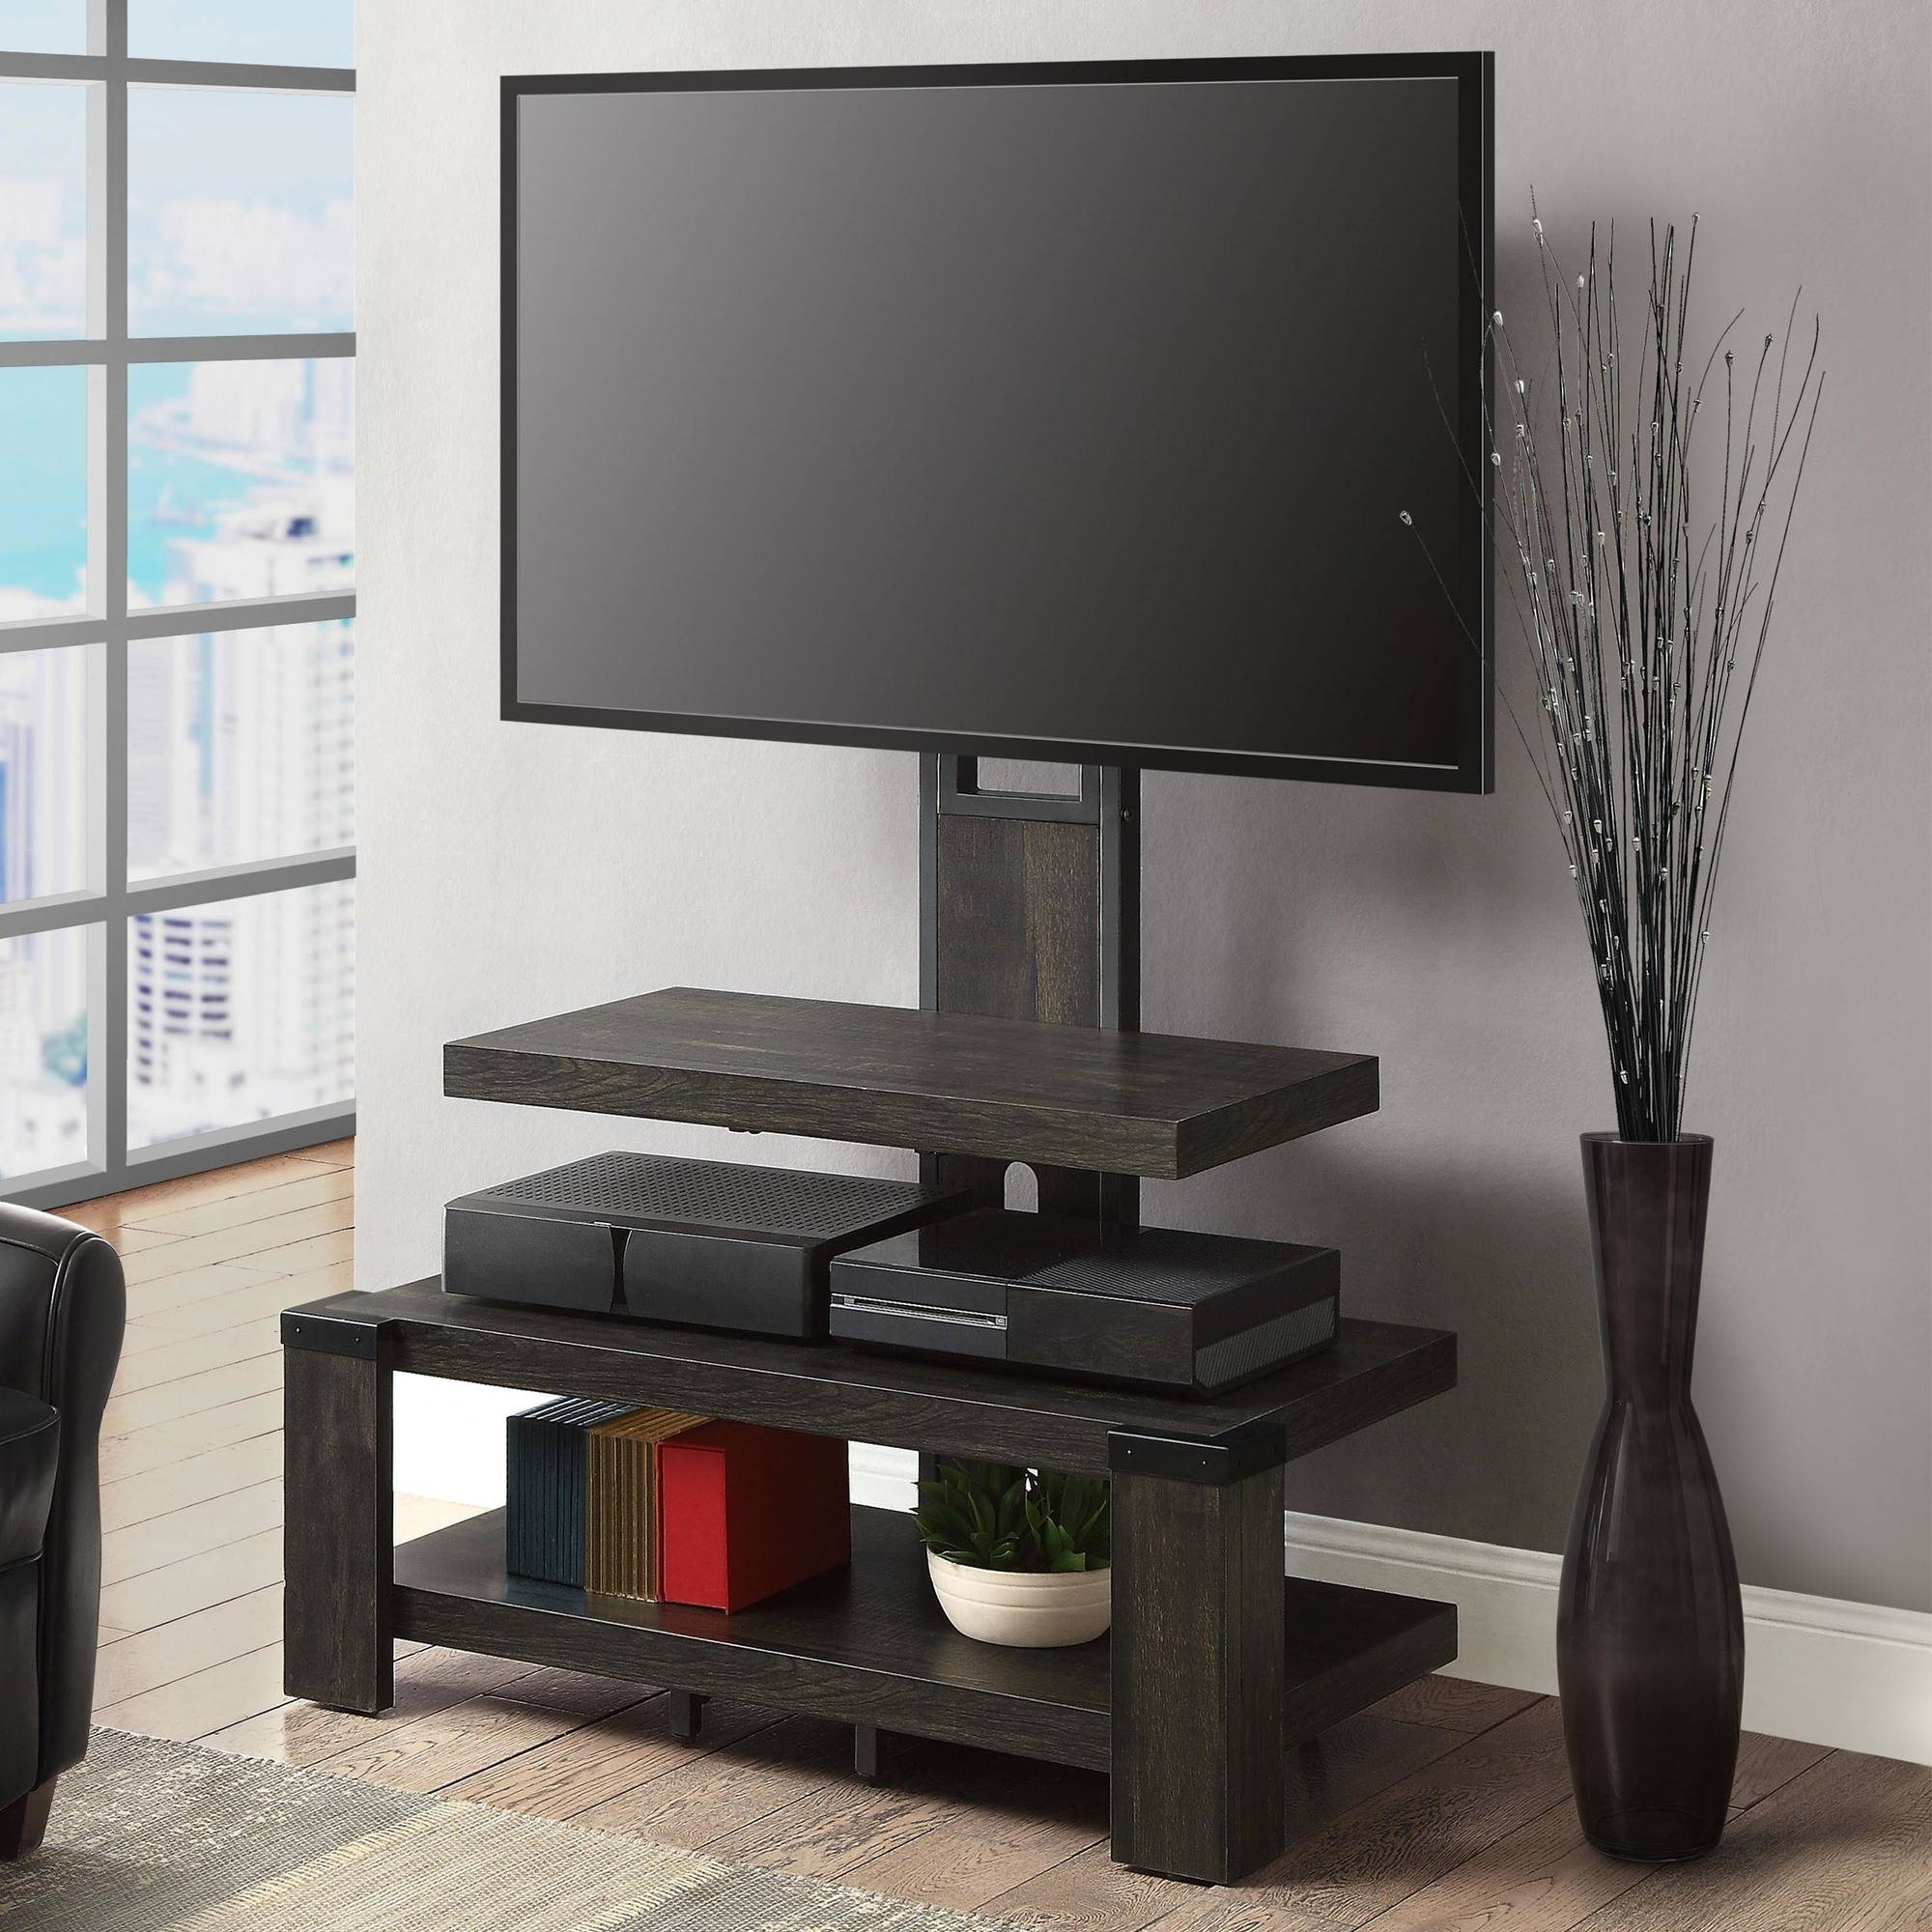 Tv Stand Wfloater Mount 3 Shelves For Tvs Up To 55 Weathered Dark